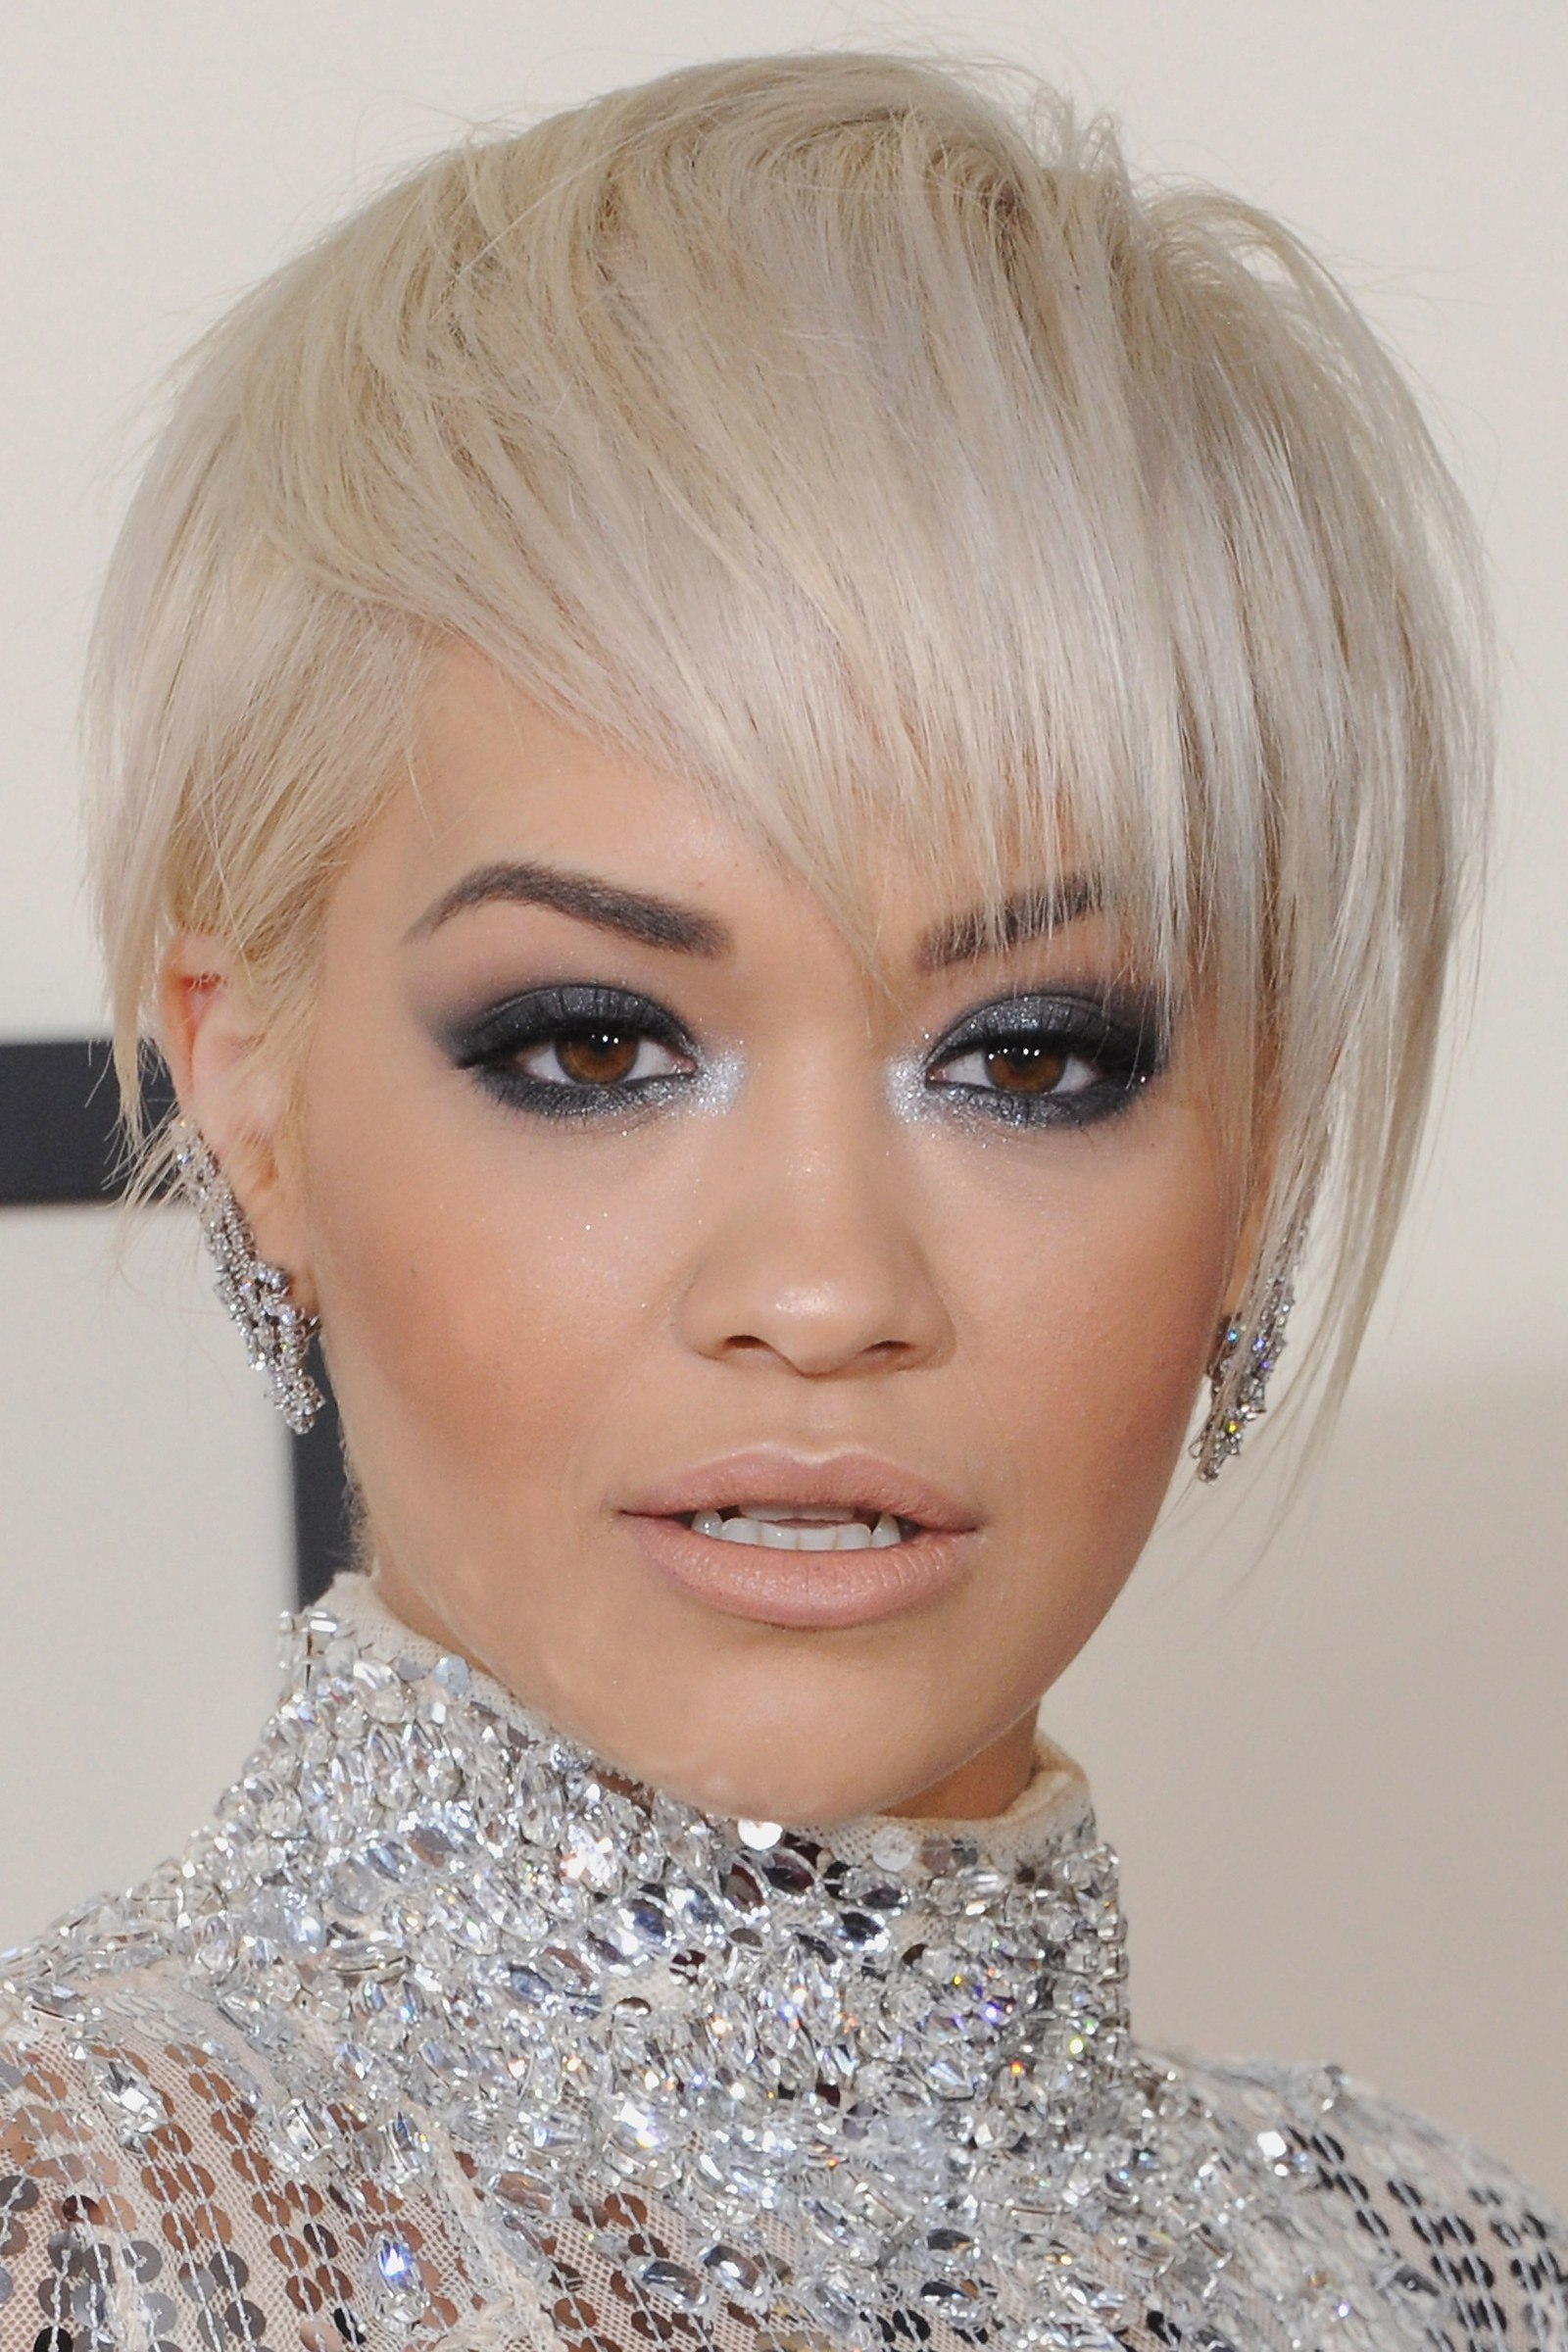 Best Short Hair Celebrity Haircuts – Short Hair Styles – Teen Vogue With Regard To Rita Ora Short Hairstyles (View 11 of 25)